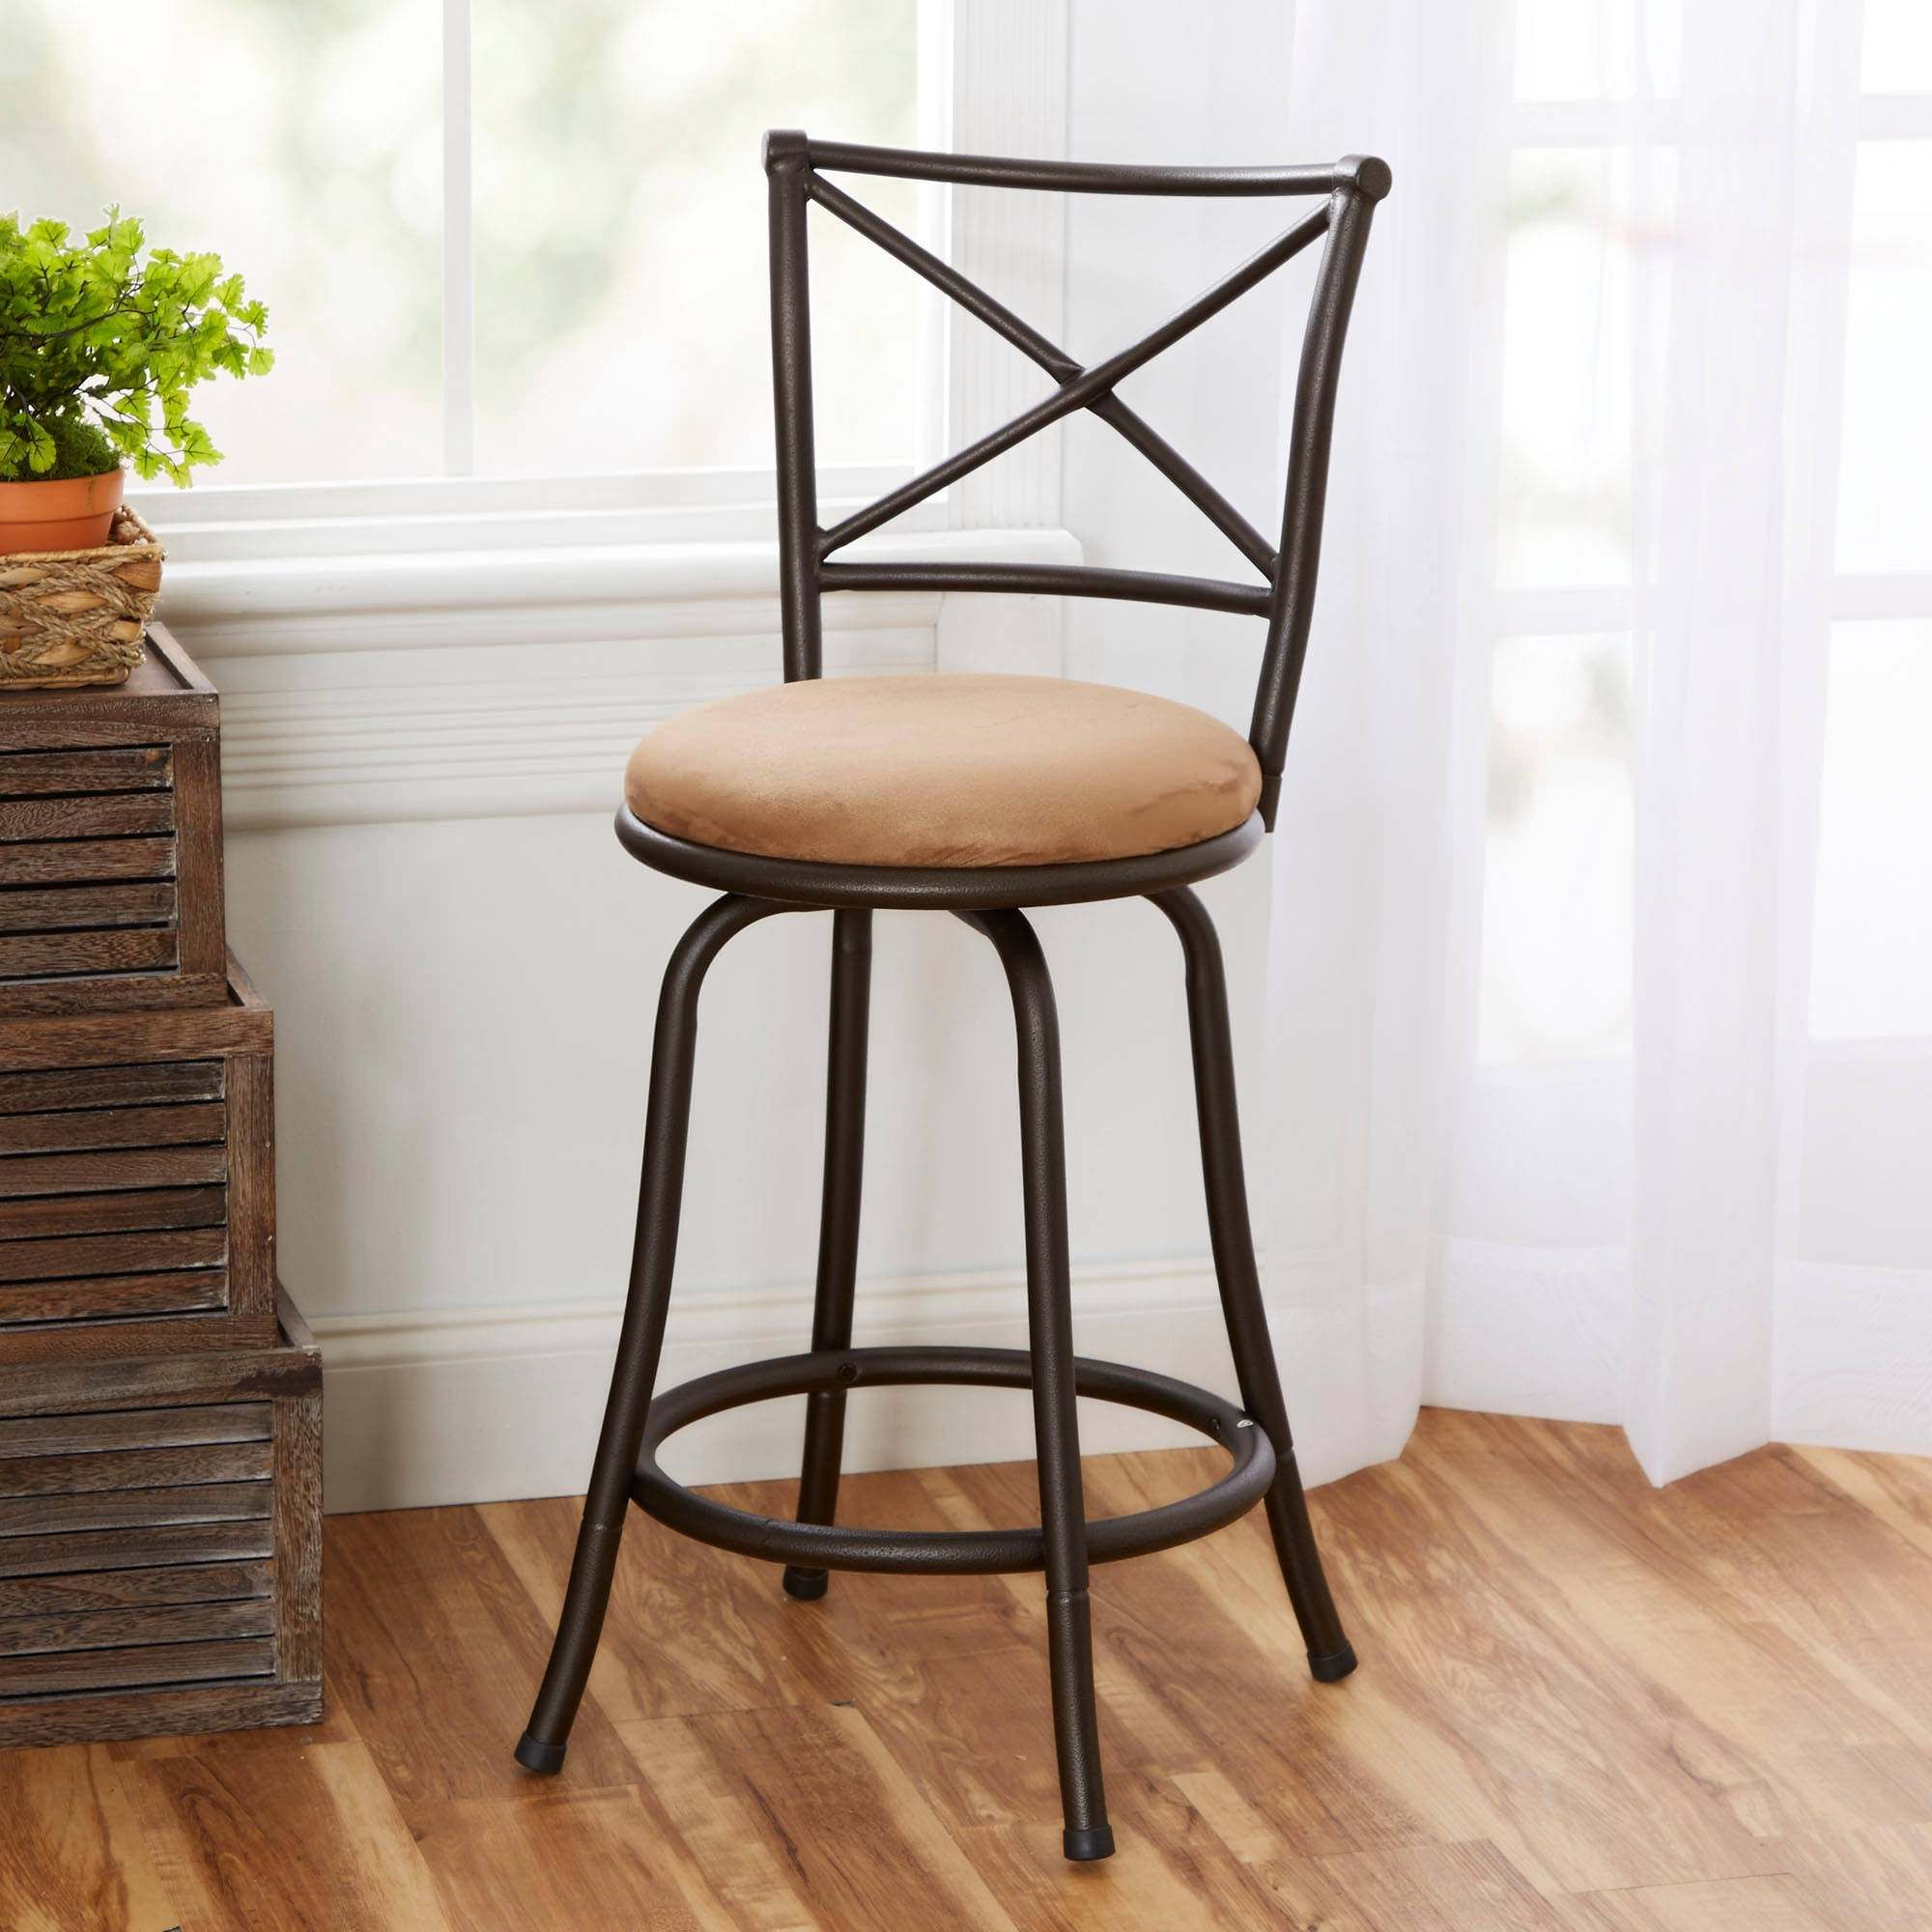 What Is So Fascinating About Wayfair Bar Stools In 2020 Bar